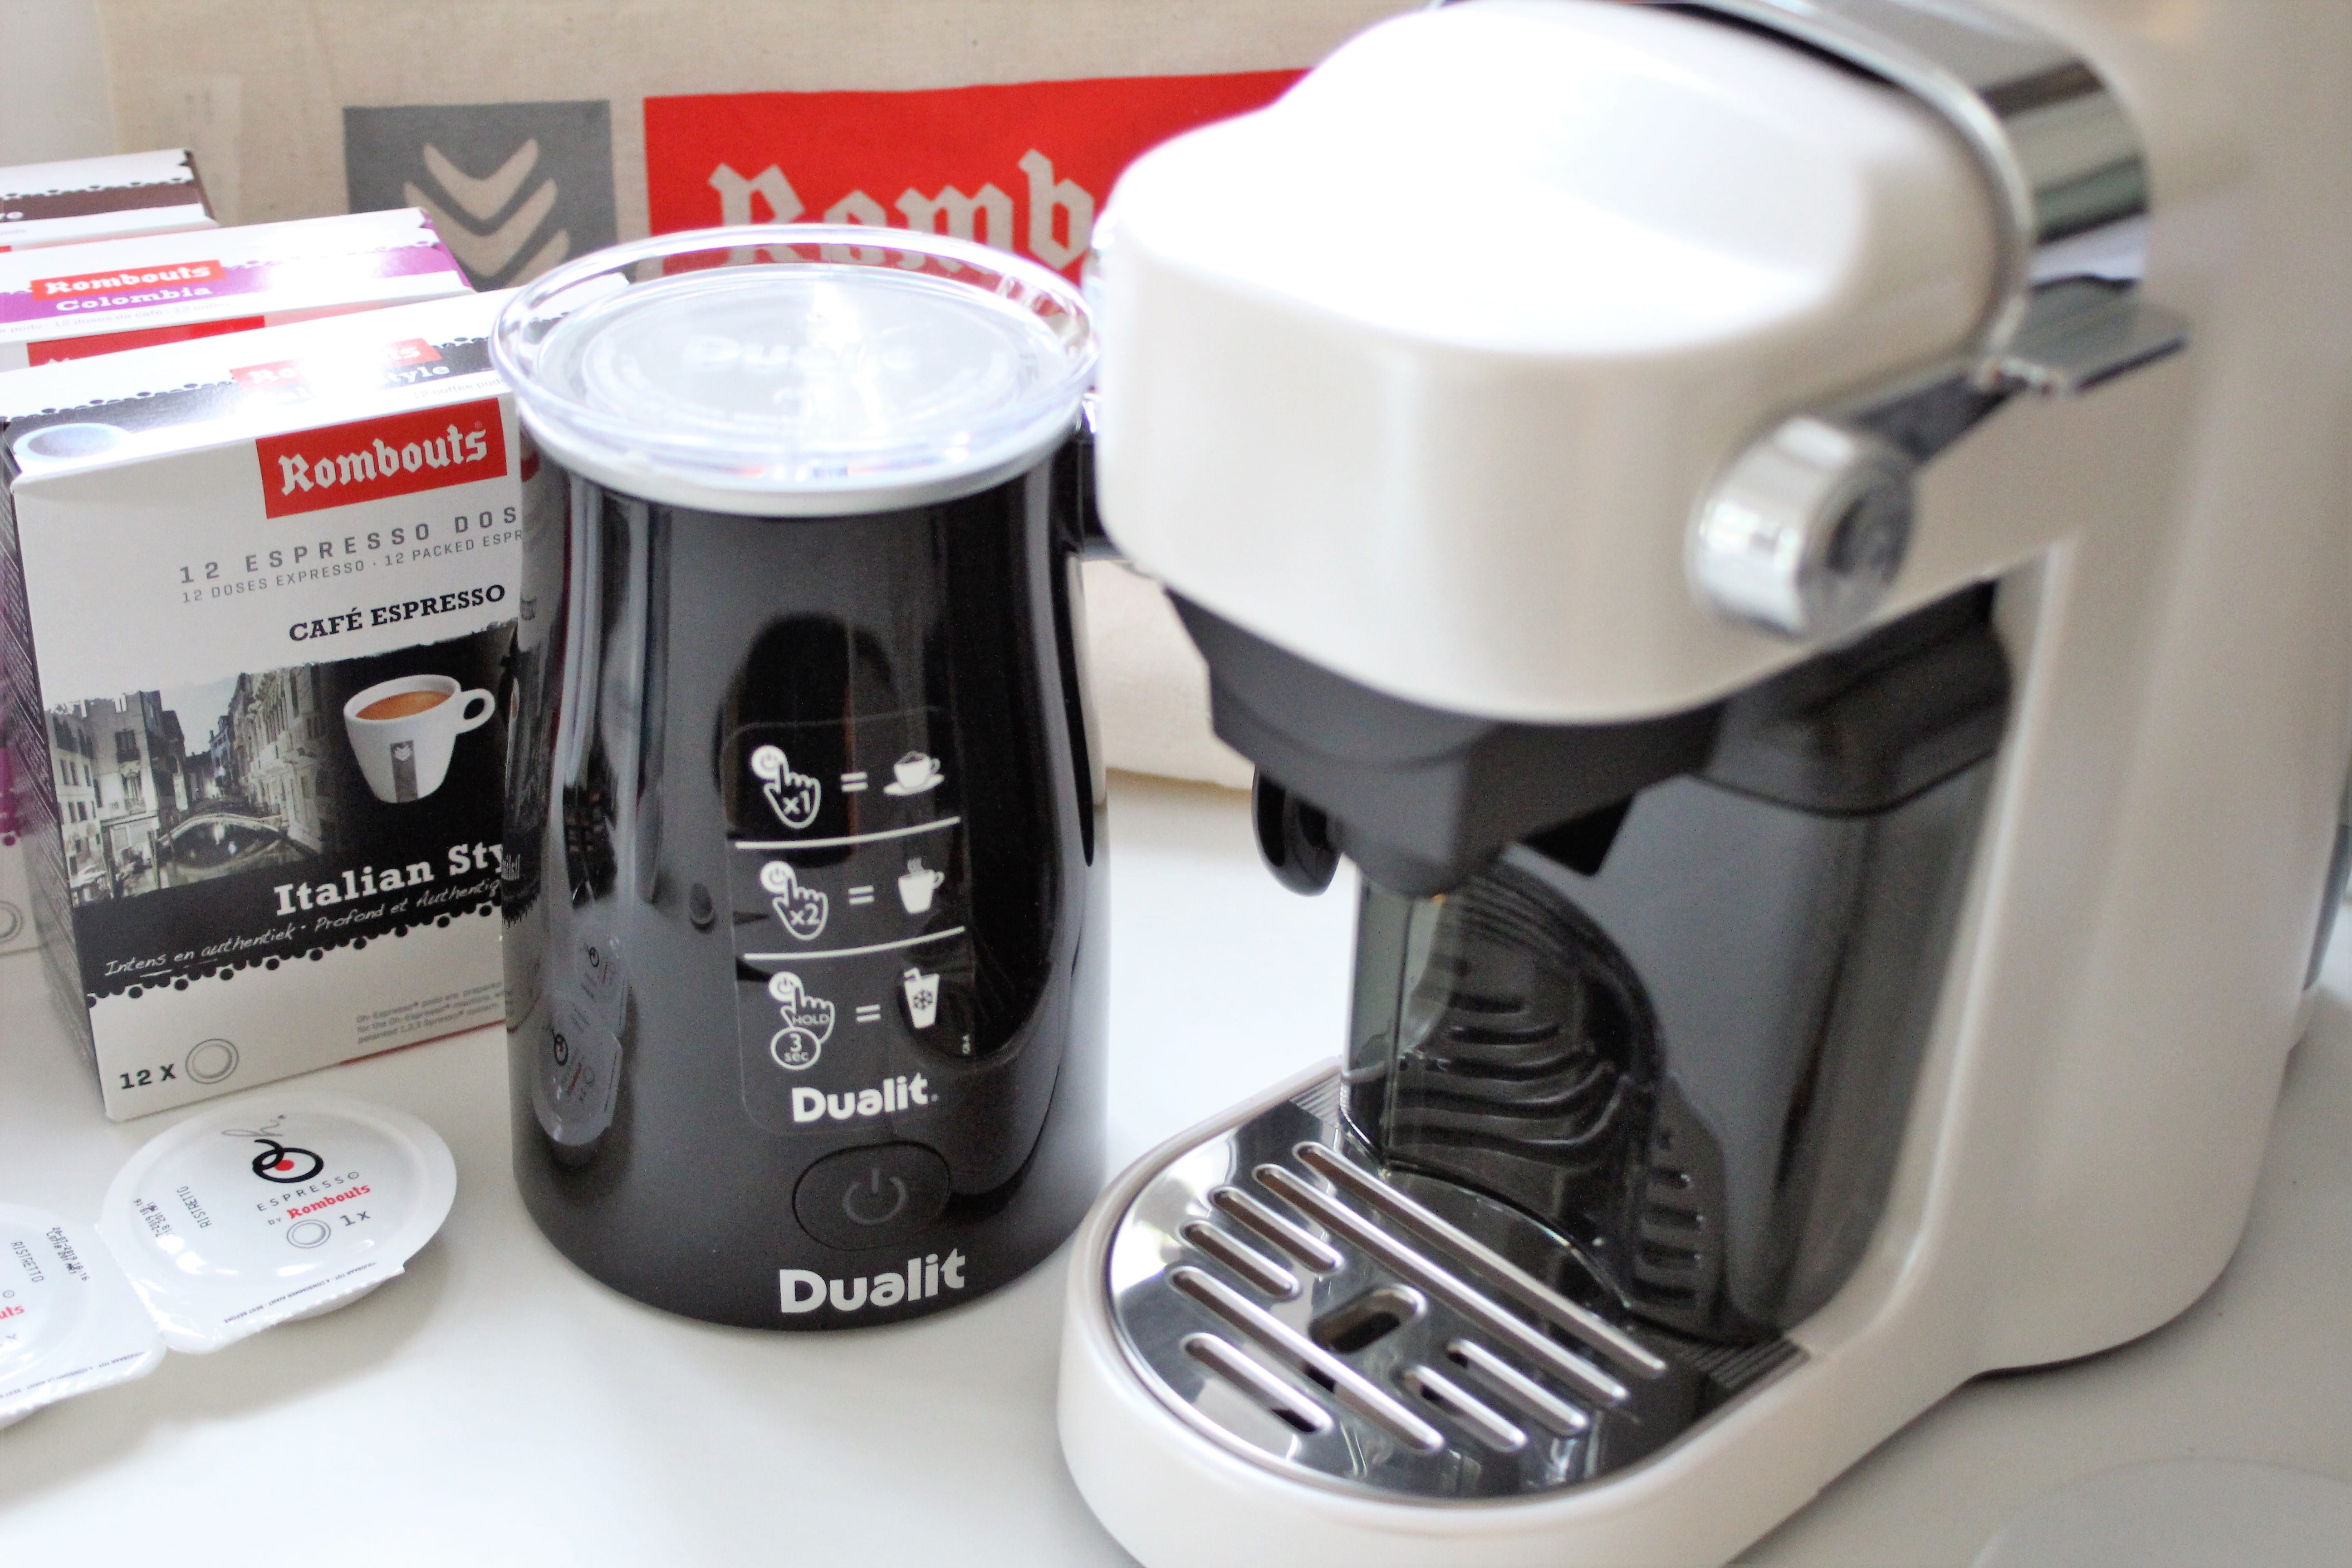 Rombouts Xpress'OH and Dualit DMF1